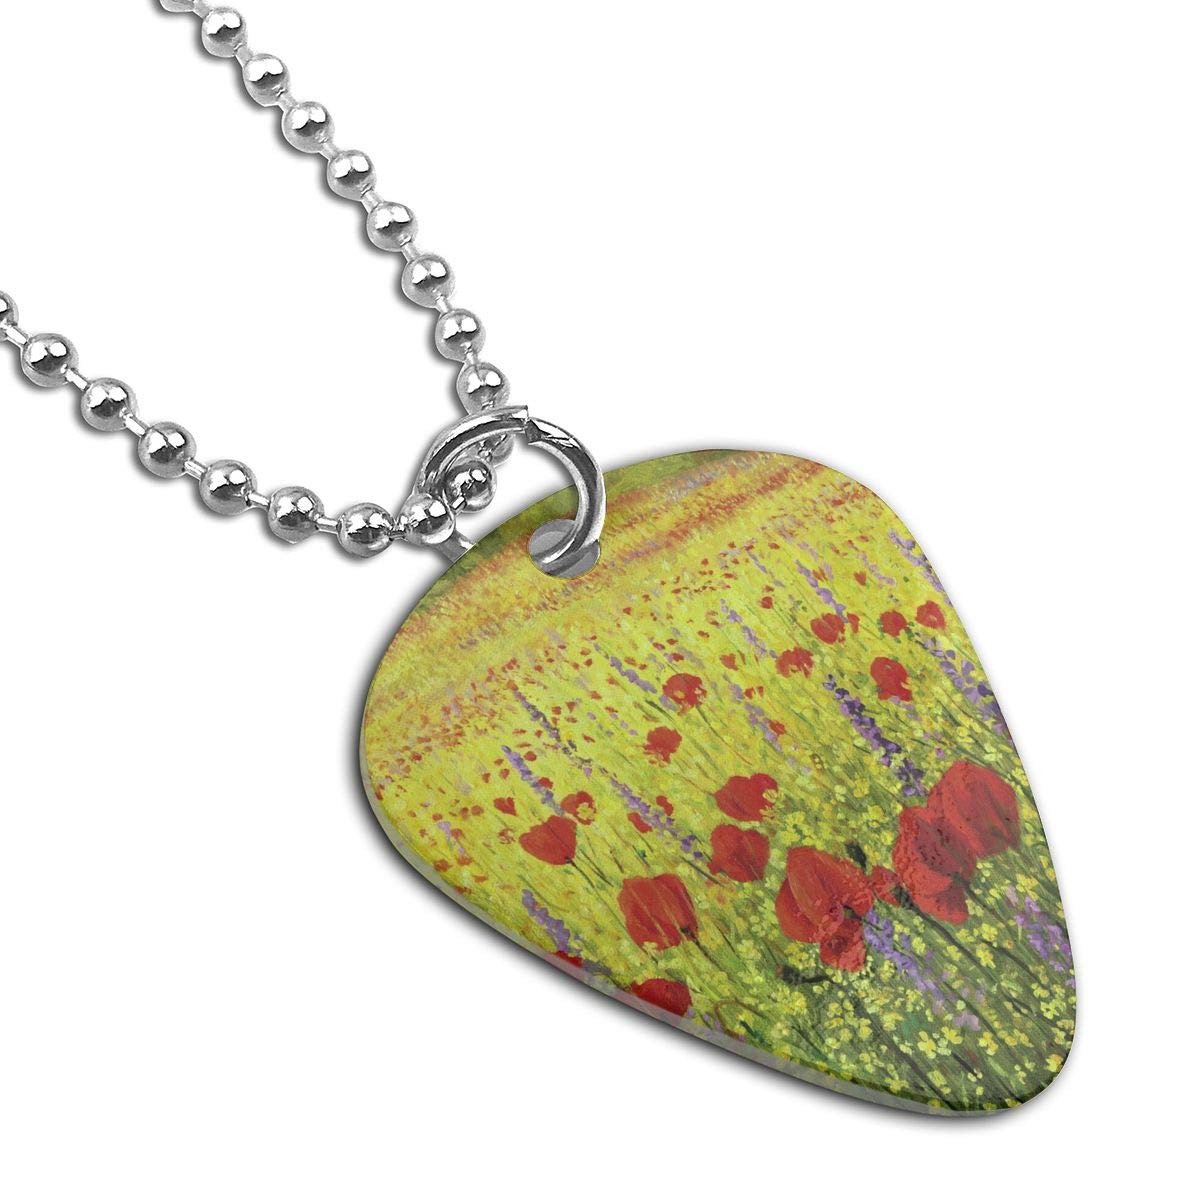 Custom Colorful Field With Poppies Military Army Pendant Tag Necklace Guitar Picks For Mens Pets